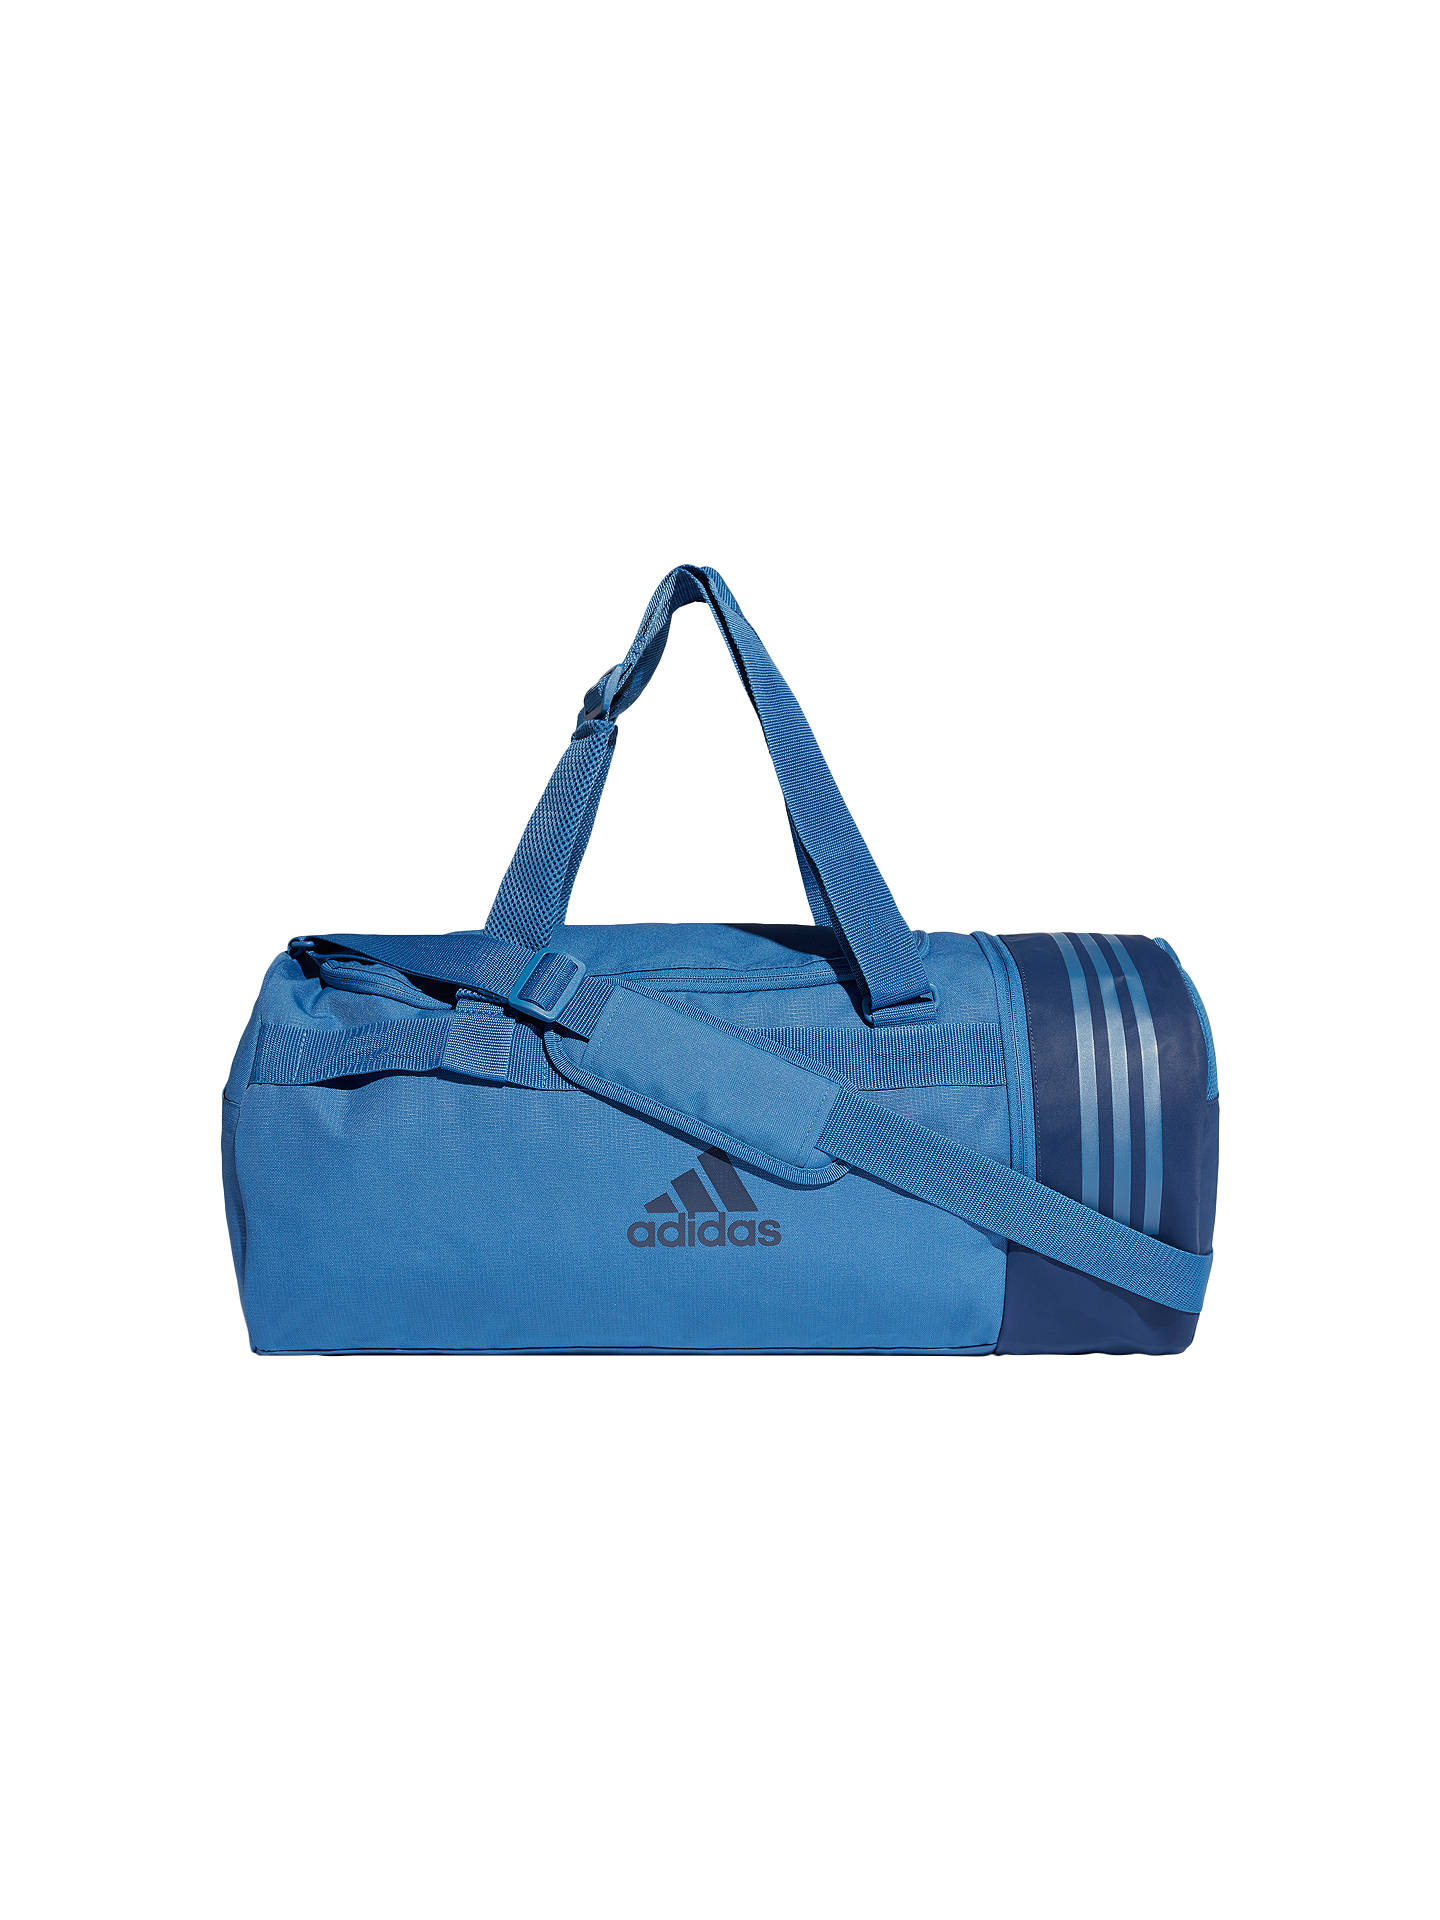 8f695a49aa Buy adidas Convertible 3-Stripes Duffle Bag